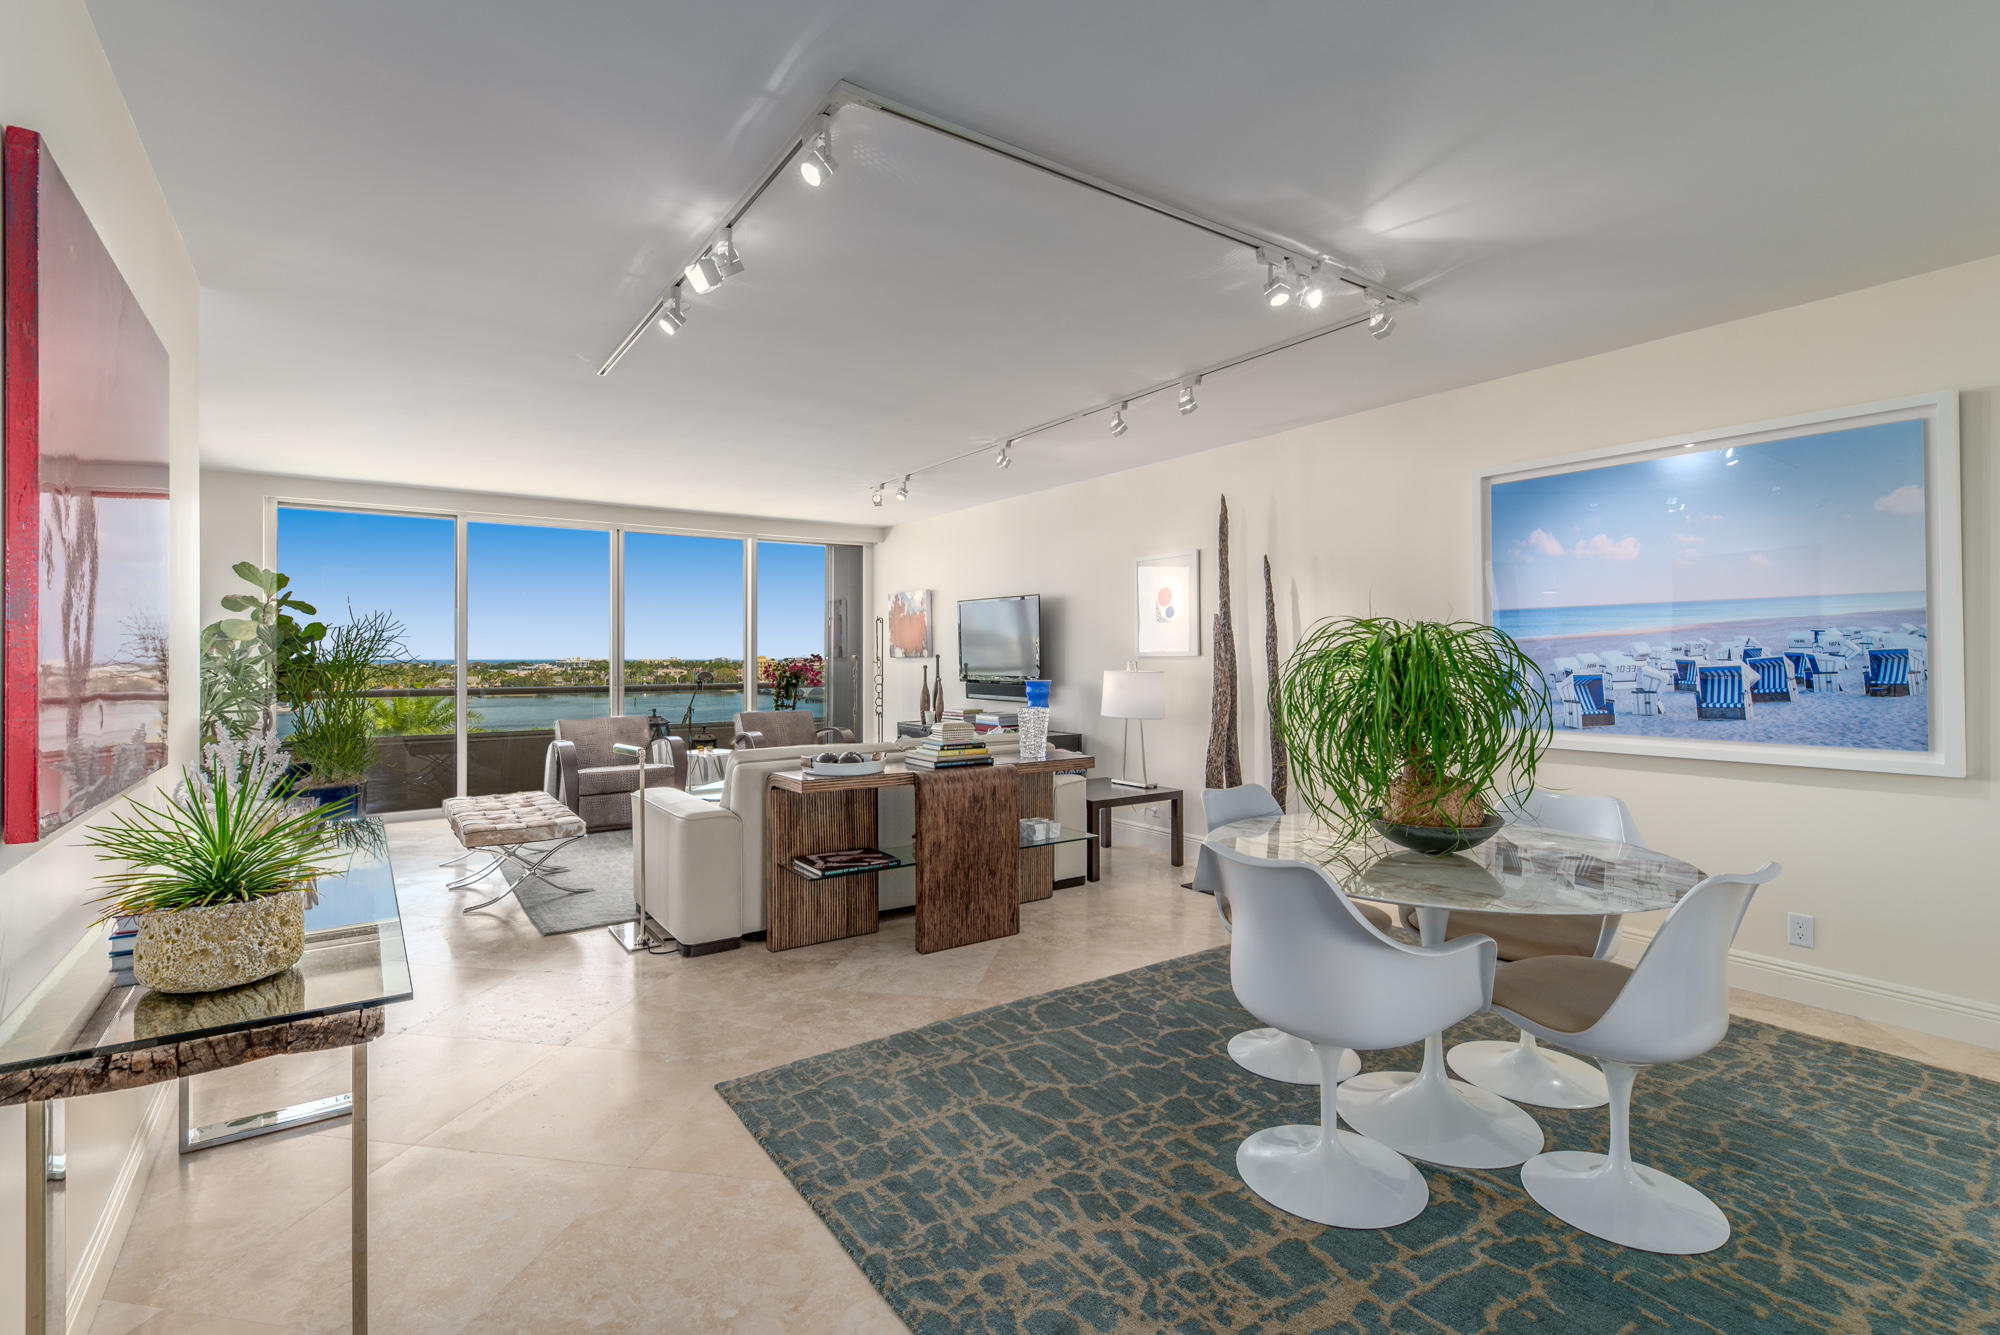 Home for sale in TRUMP PLAZA OF THE PALM BEACHES COND West Palm Beach Florida